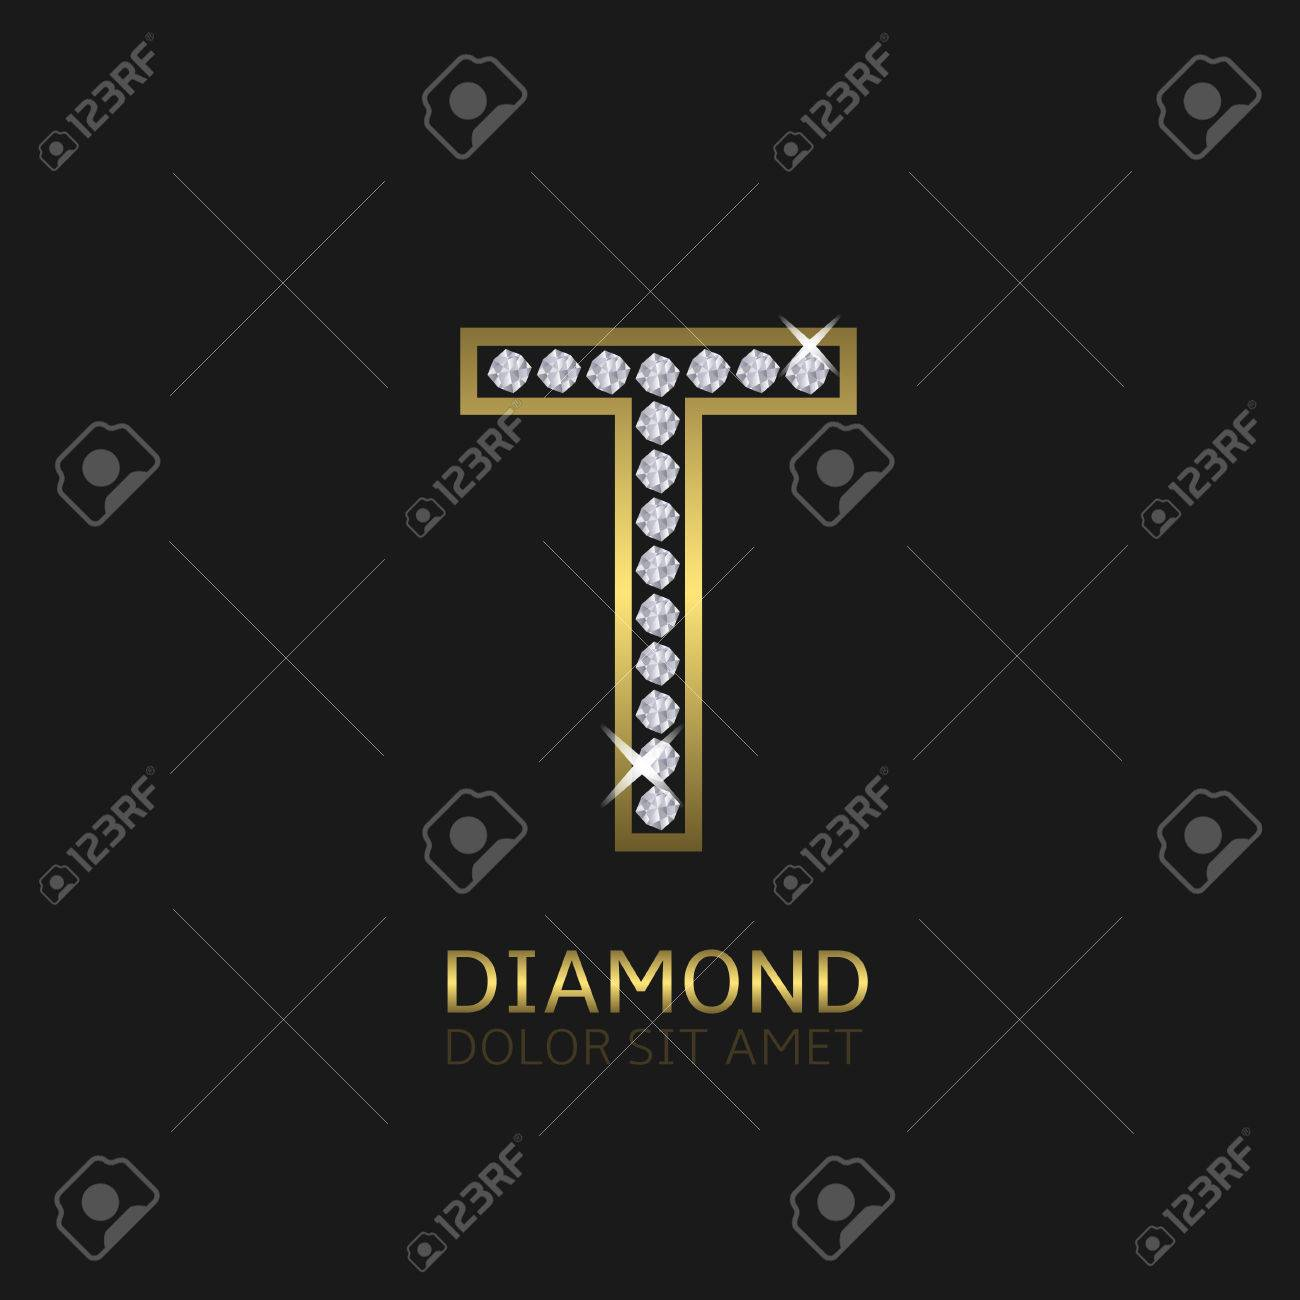 Golden Metal Letter T Logo With Diamonds Luxury Royal Wealth